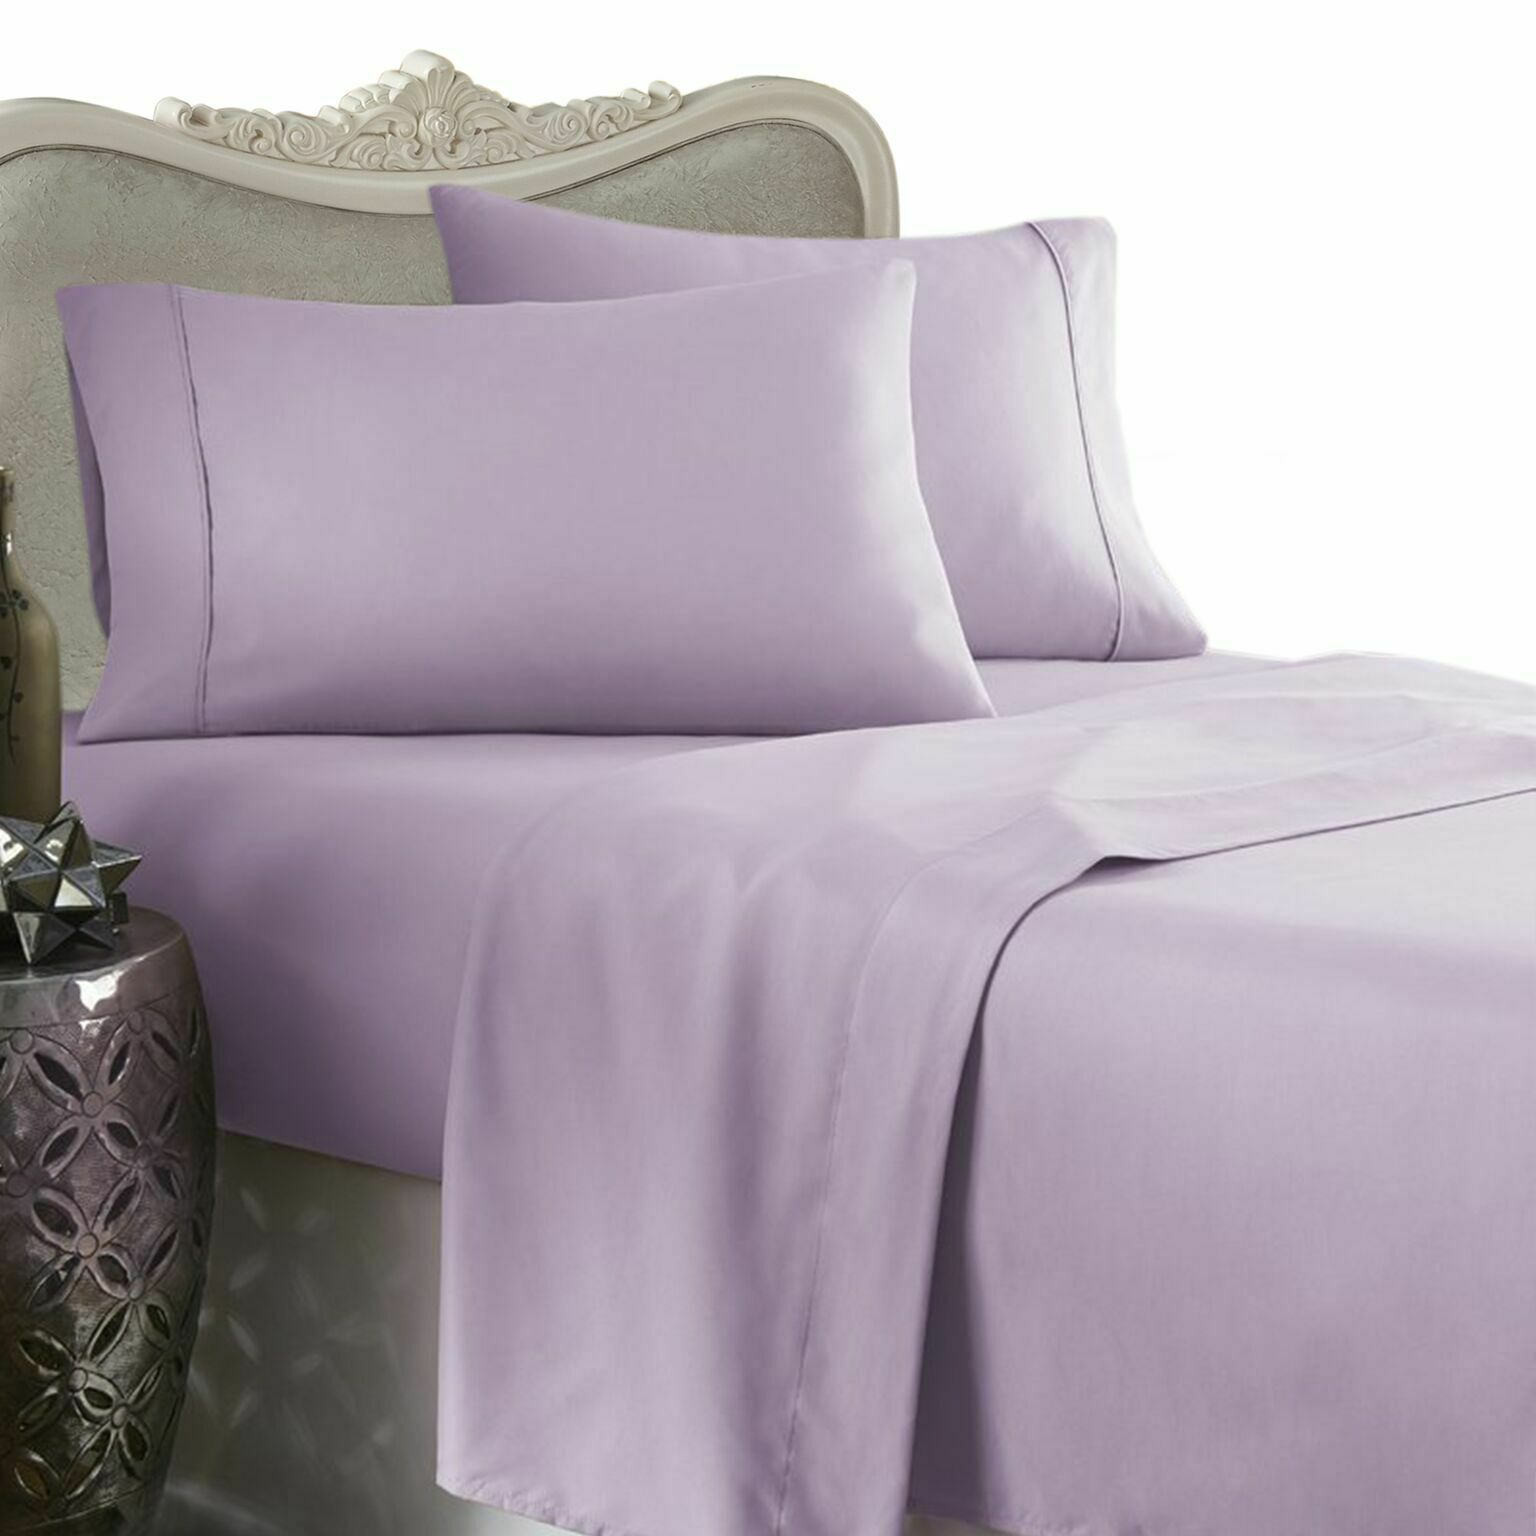 1000 Thread Count 100% Egyptian Cotton Sheet Set 1000 TC TWIN XL Lavender Solid